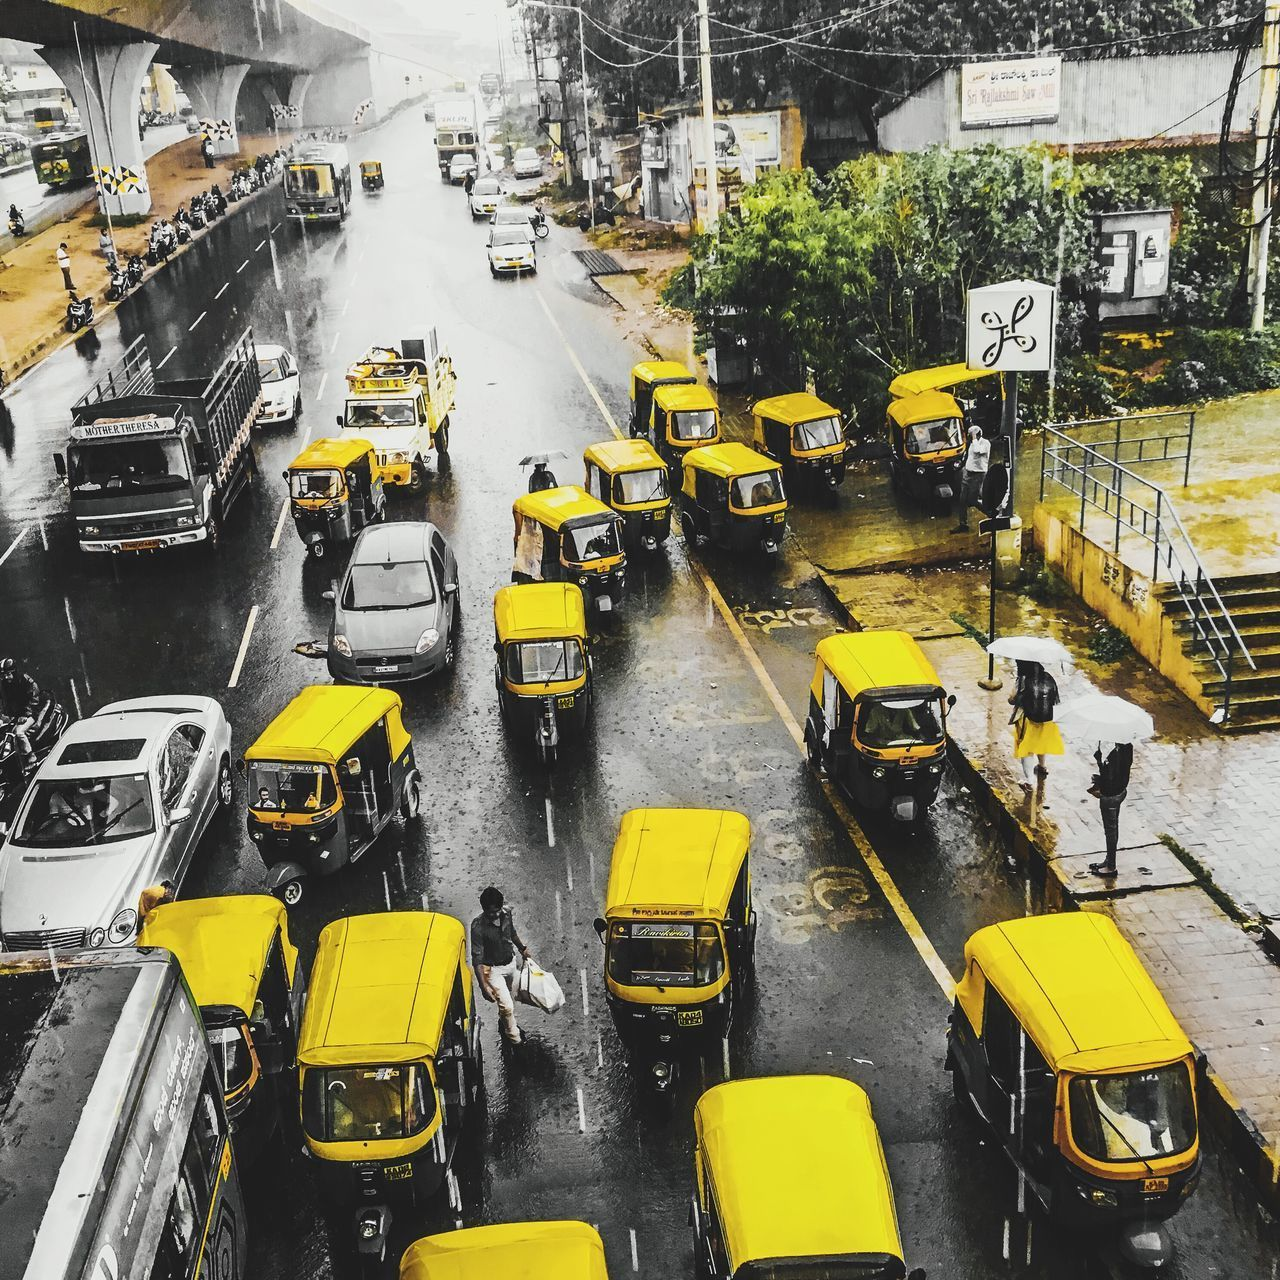 transportation, city, yellow, high angle view, architecture, mode of transportation, land vehicle, street, built structure, building exterior, motor vehicle, road, car, no people, city street, city life, traffic, outdoors, taxi